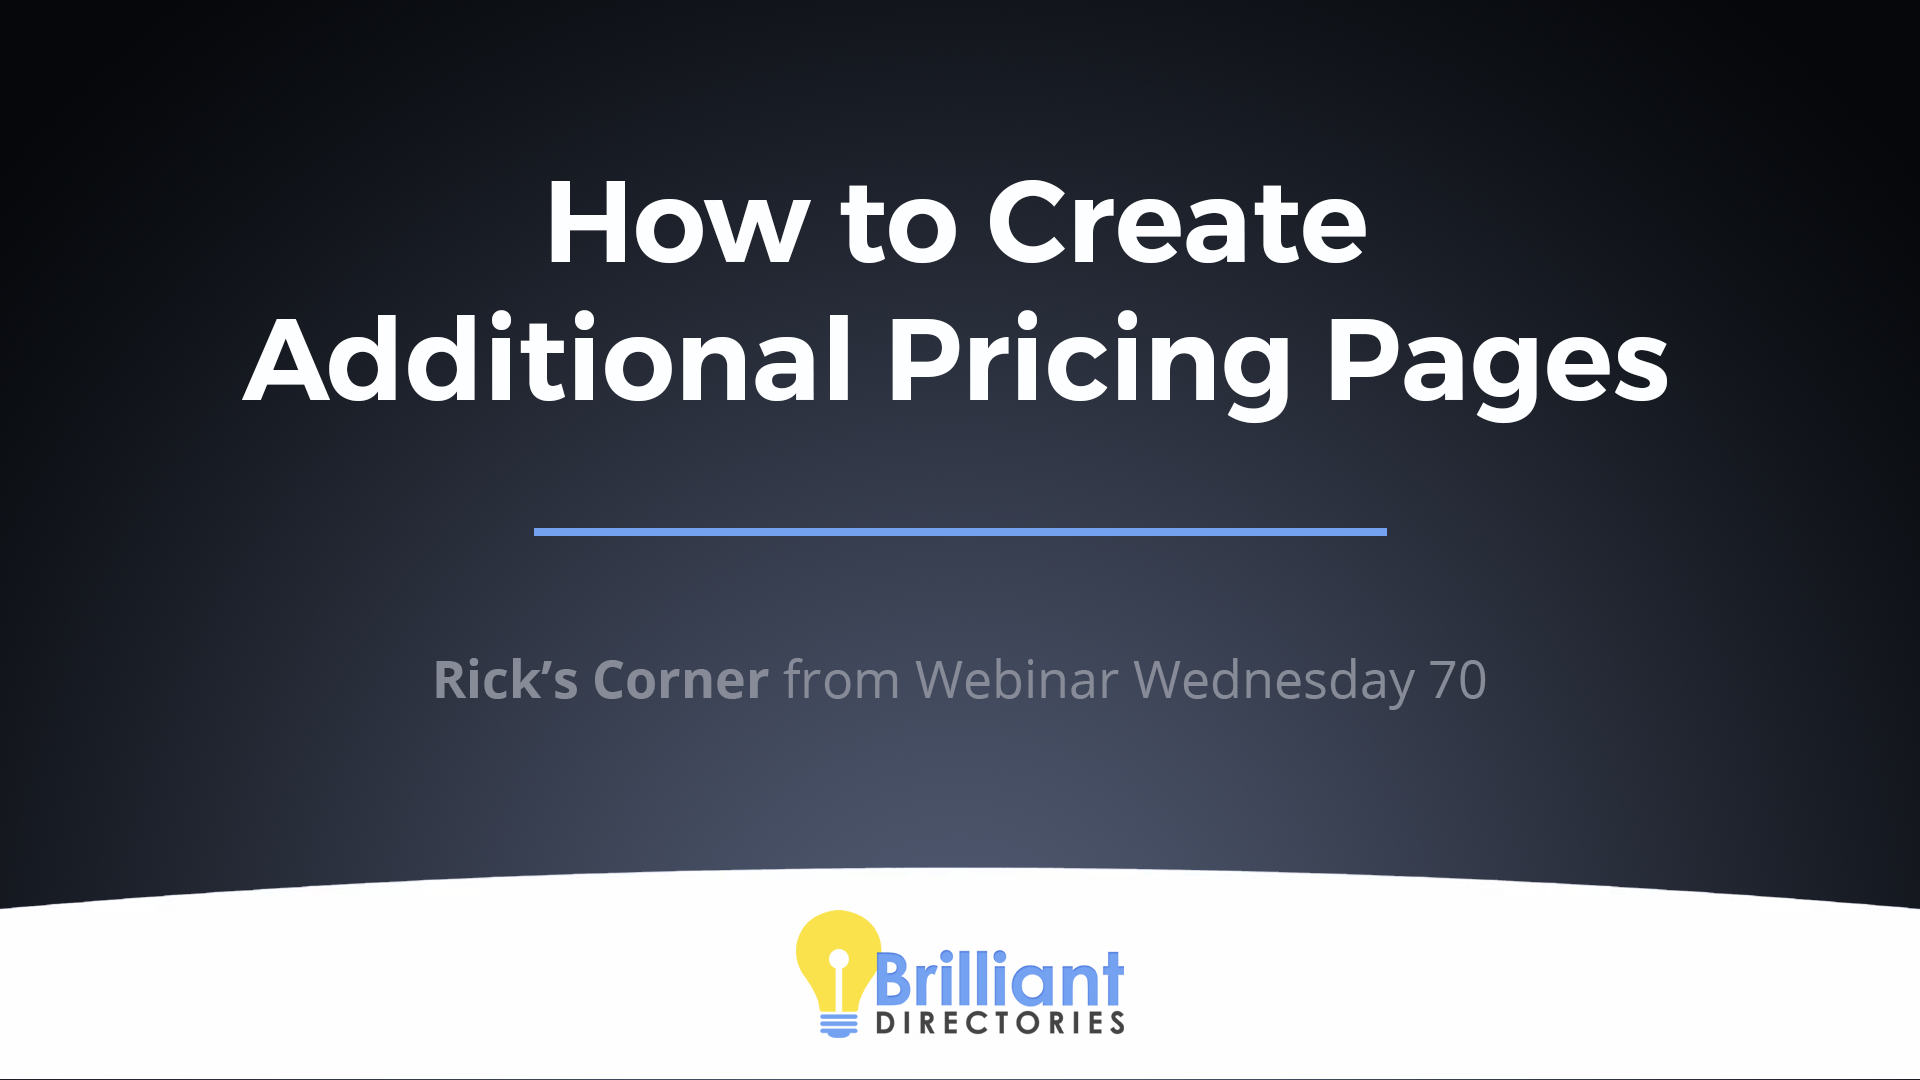 https://www.brilliantdirectories.com/blog/how-to-create-additional-pricing-pages-for-a-membership-website